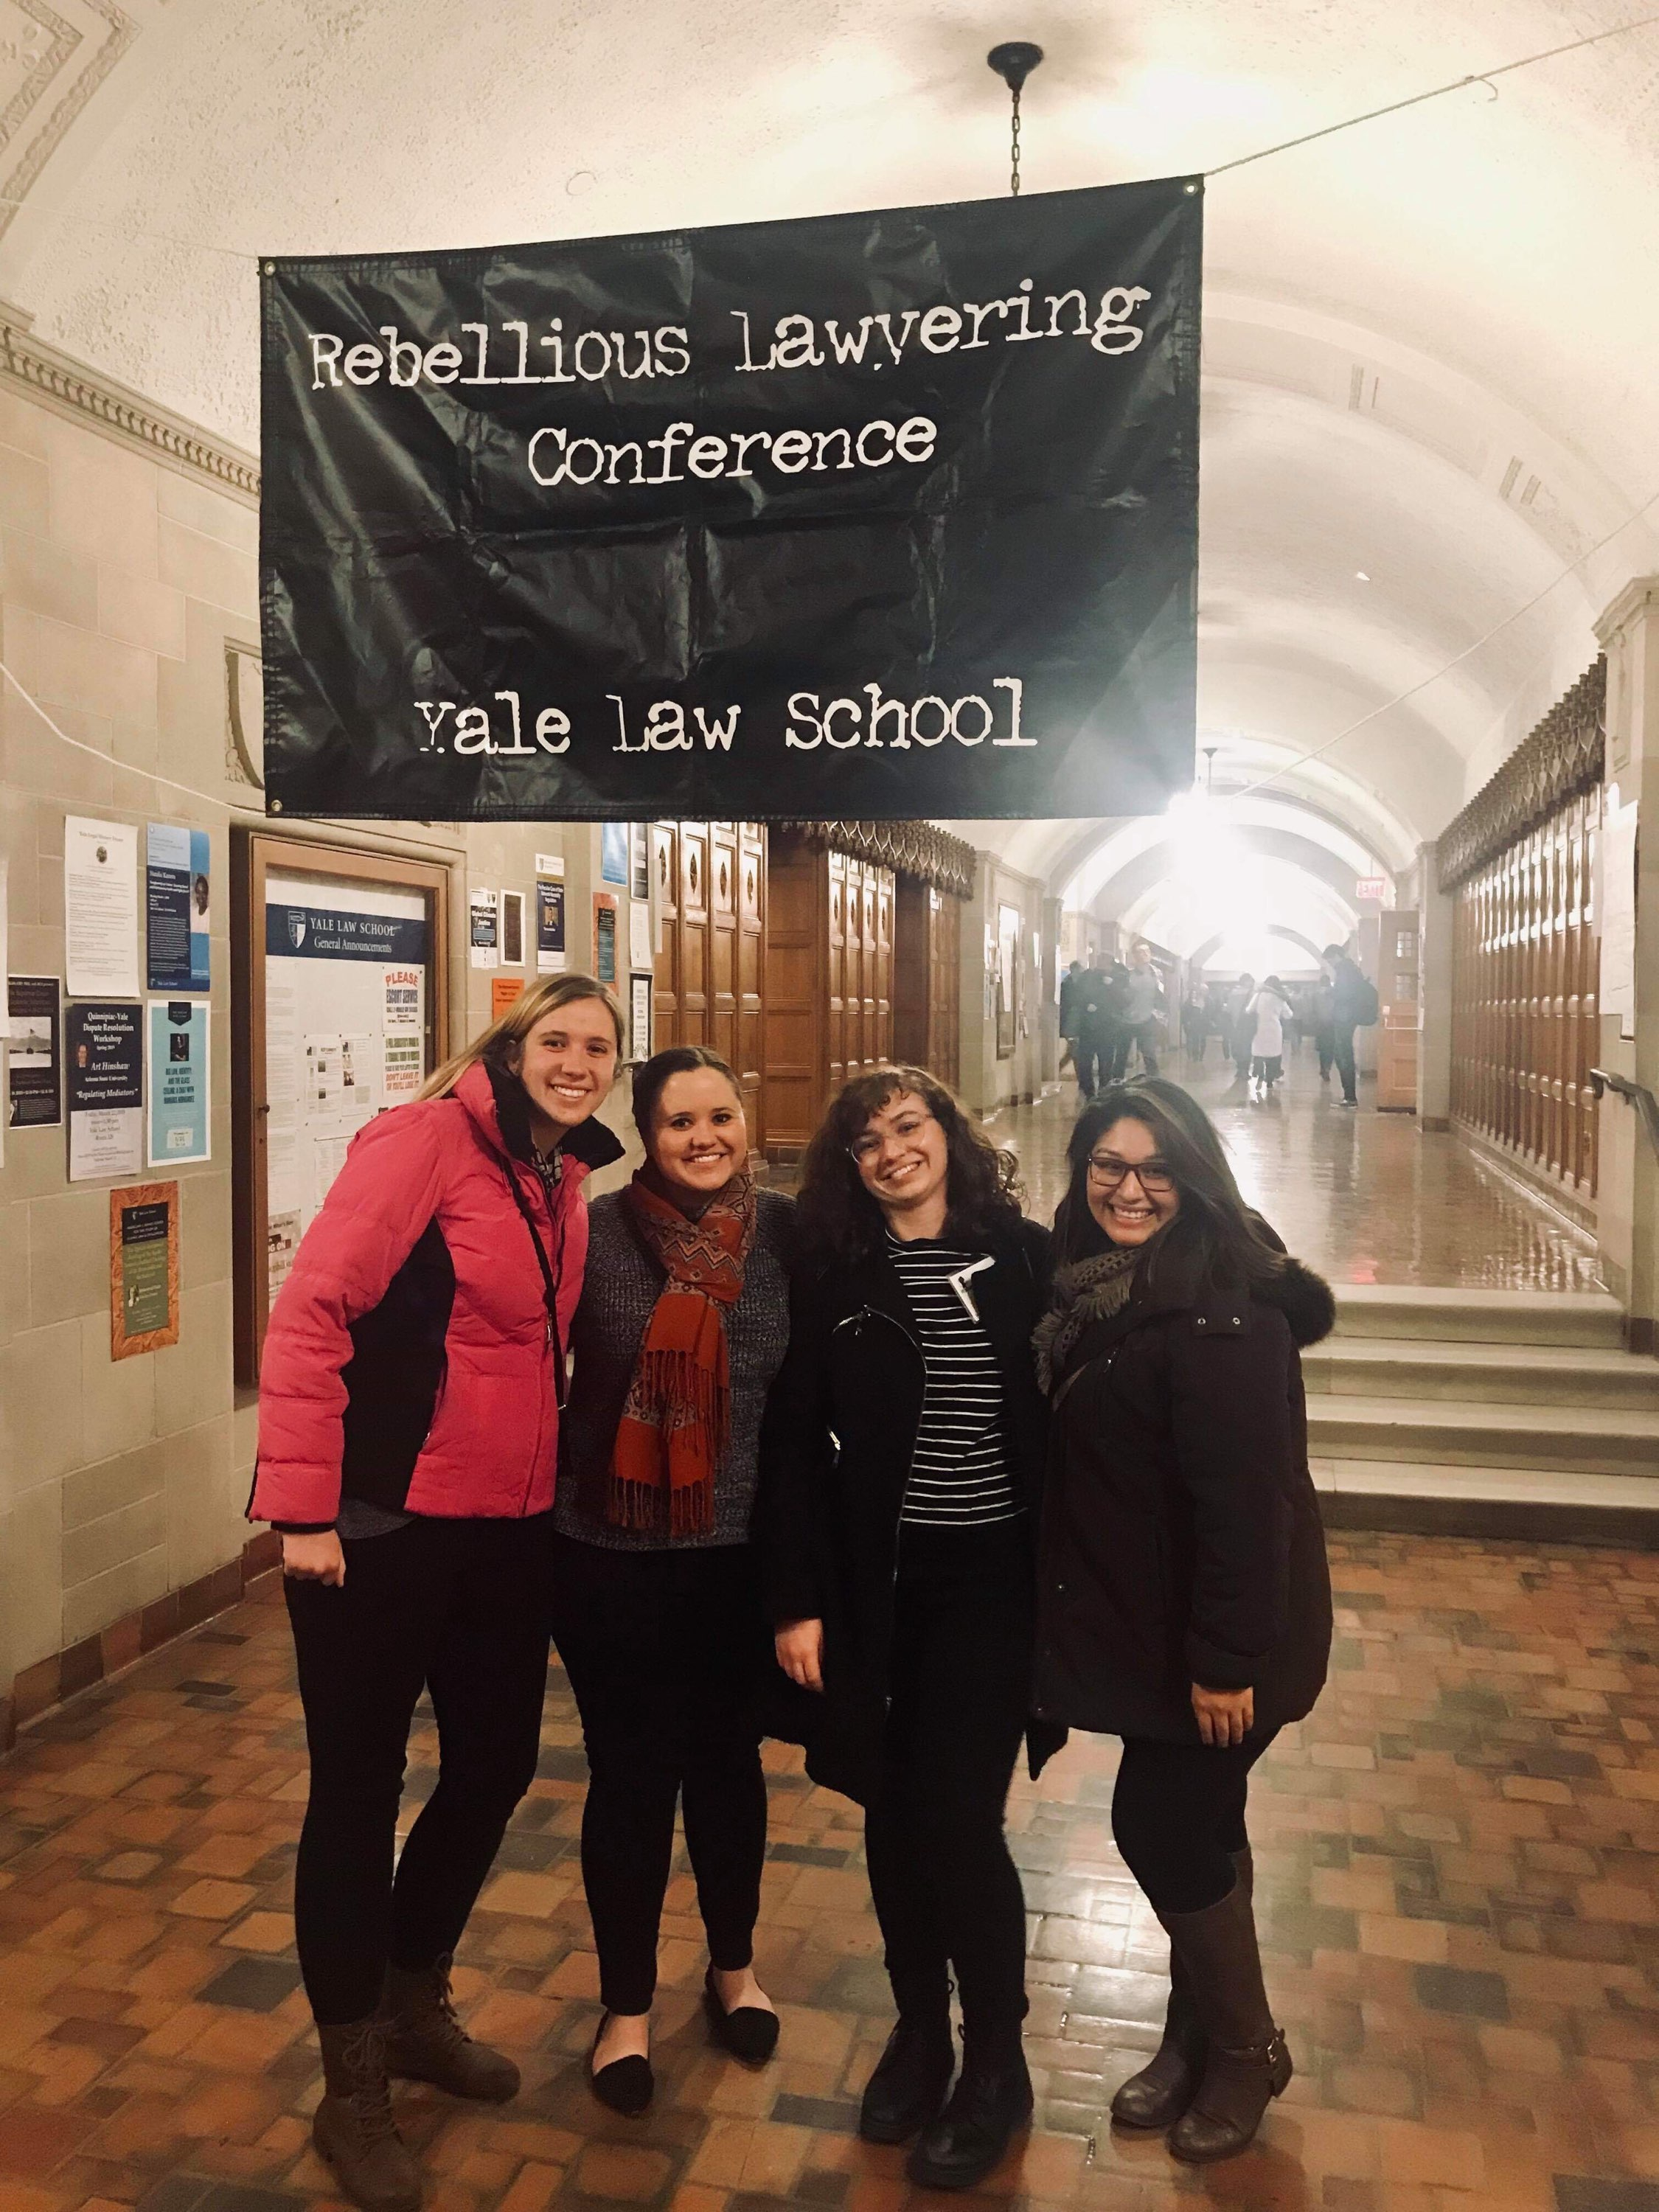 AUWCL Students Attend Annual Rebellious Lawyering Conference